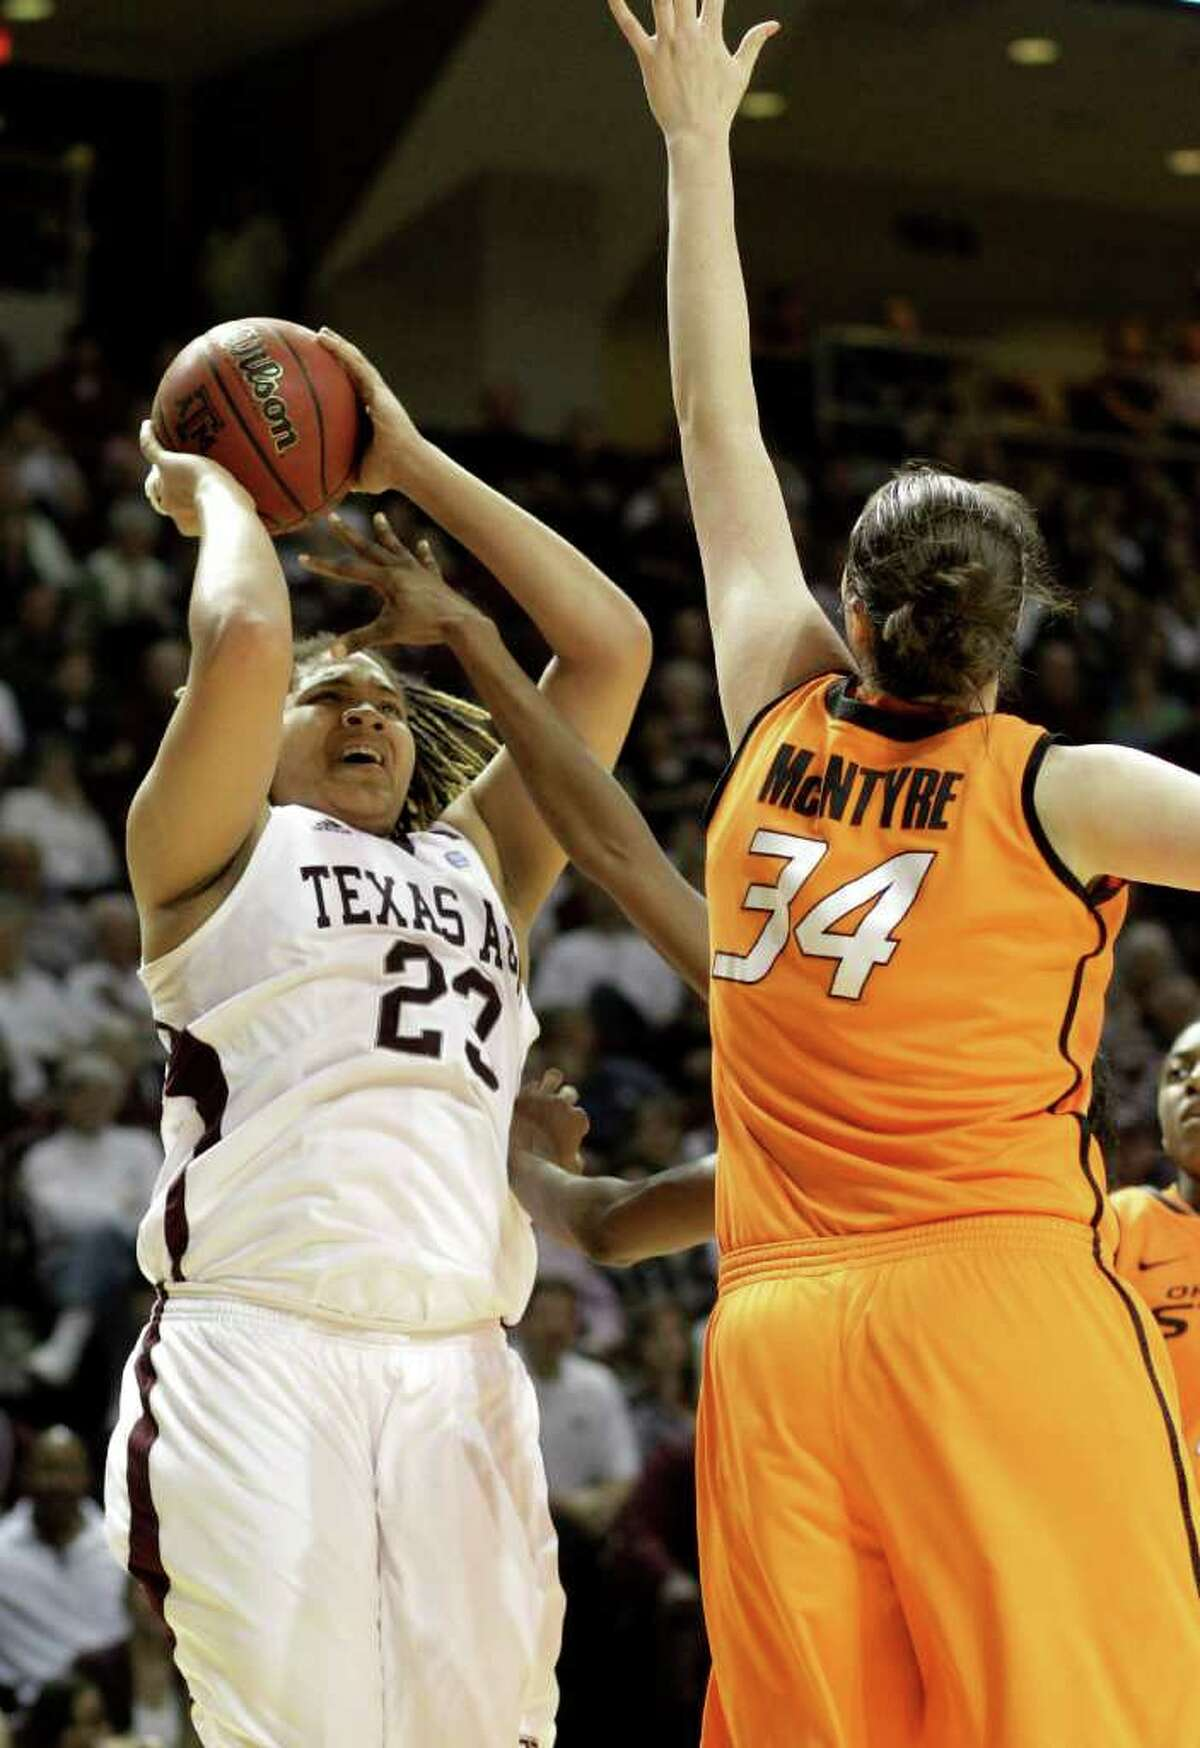 Texas A&M's Danielle Adams shoots over Oklahoma State's Vicky McIntyre during the first half on Saturday, Feb. 19, 2011, in College Station.